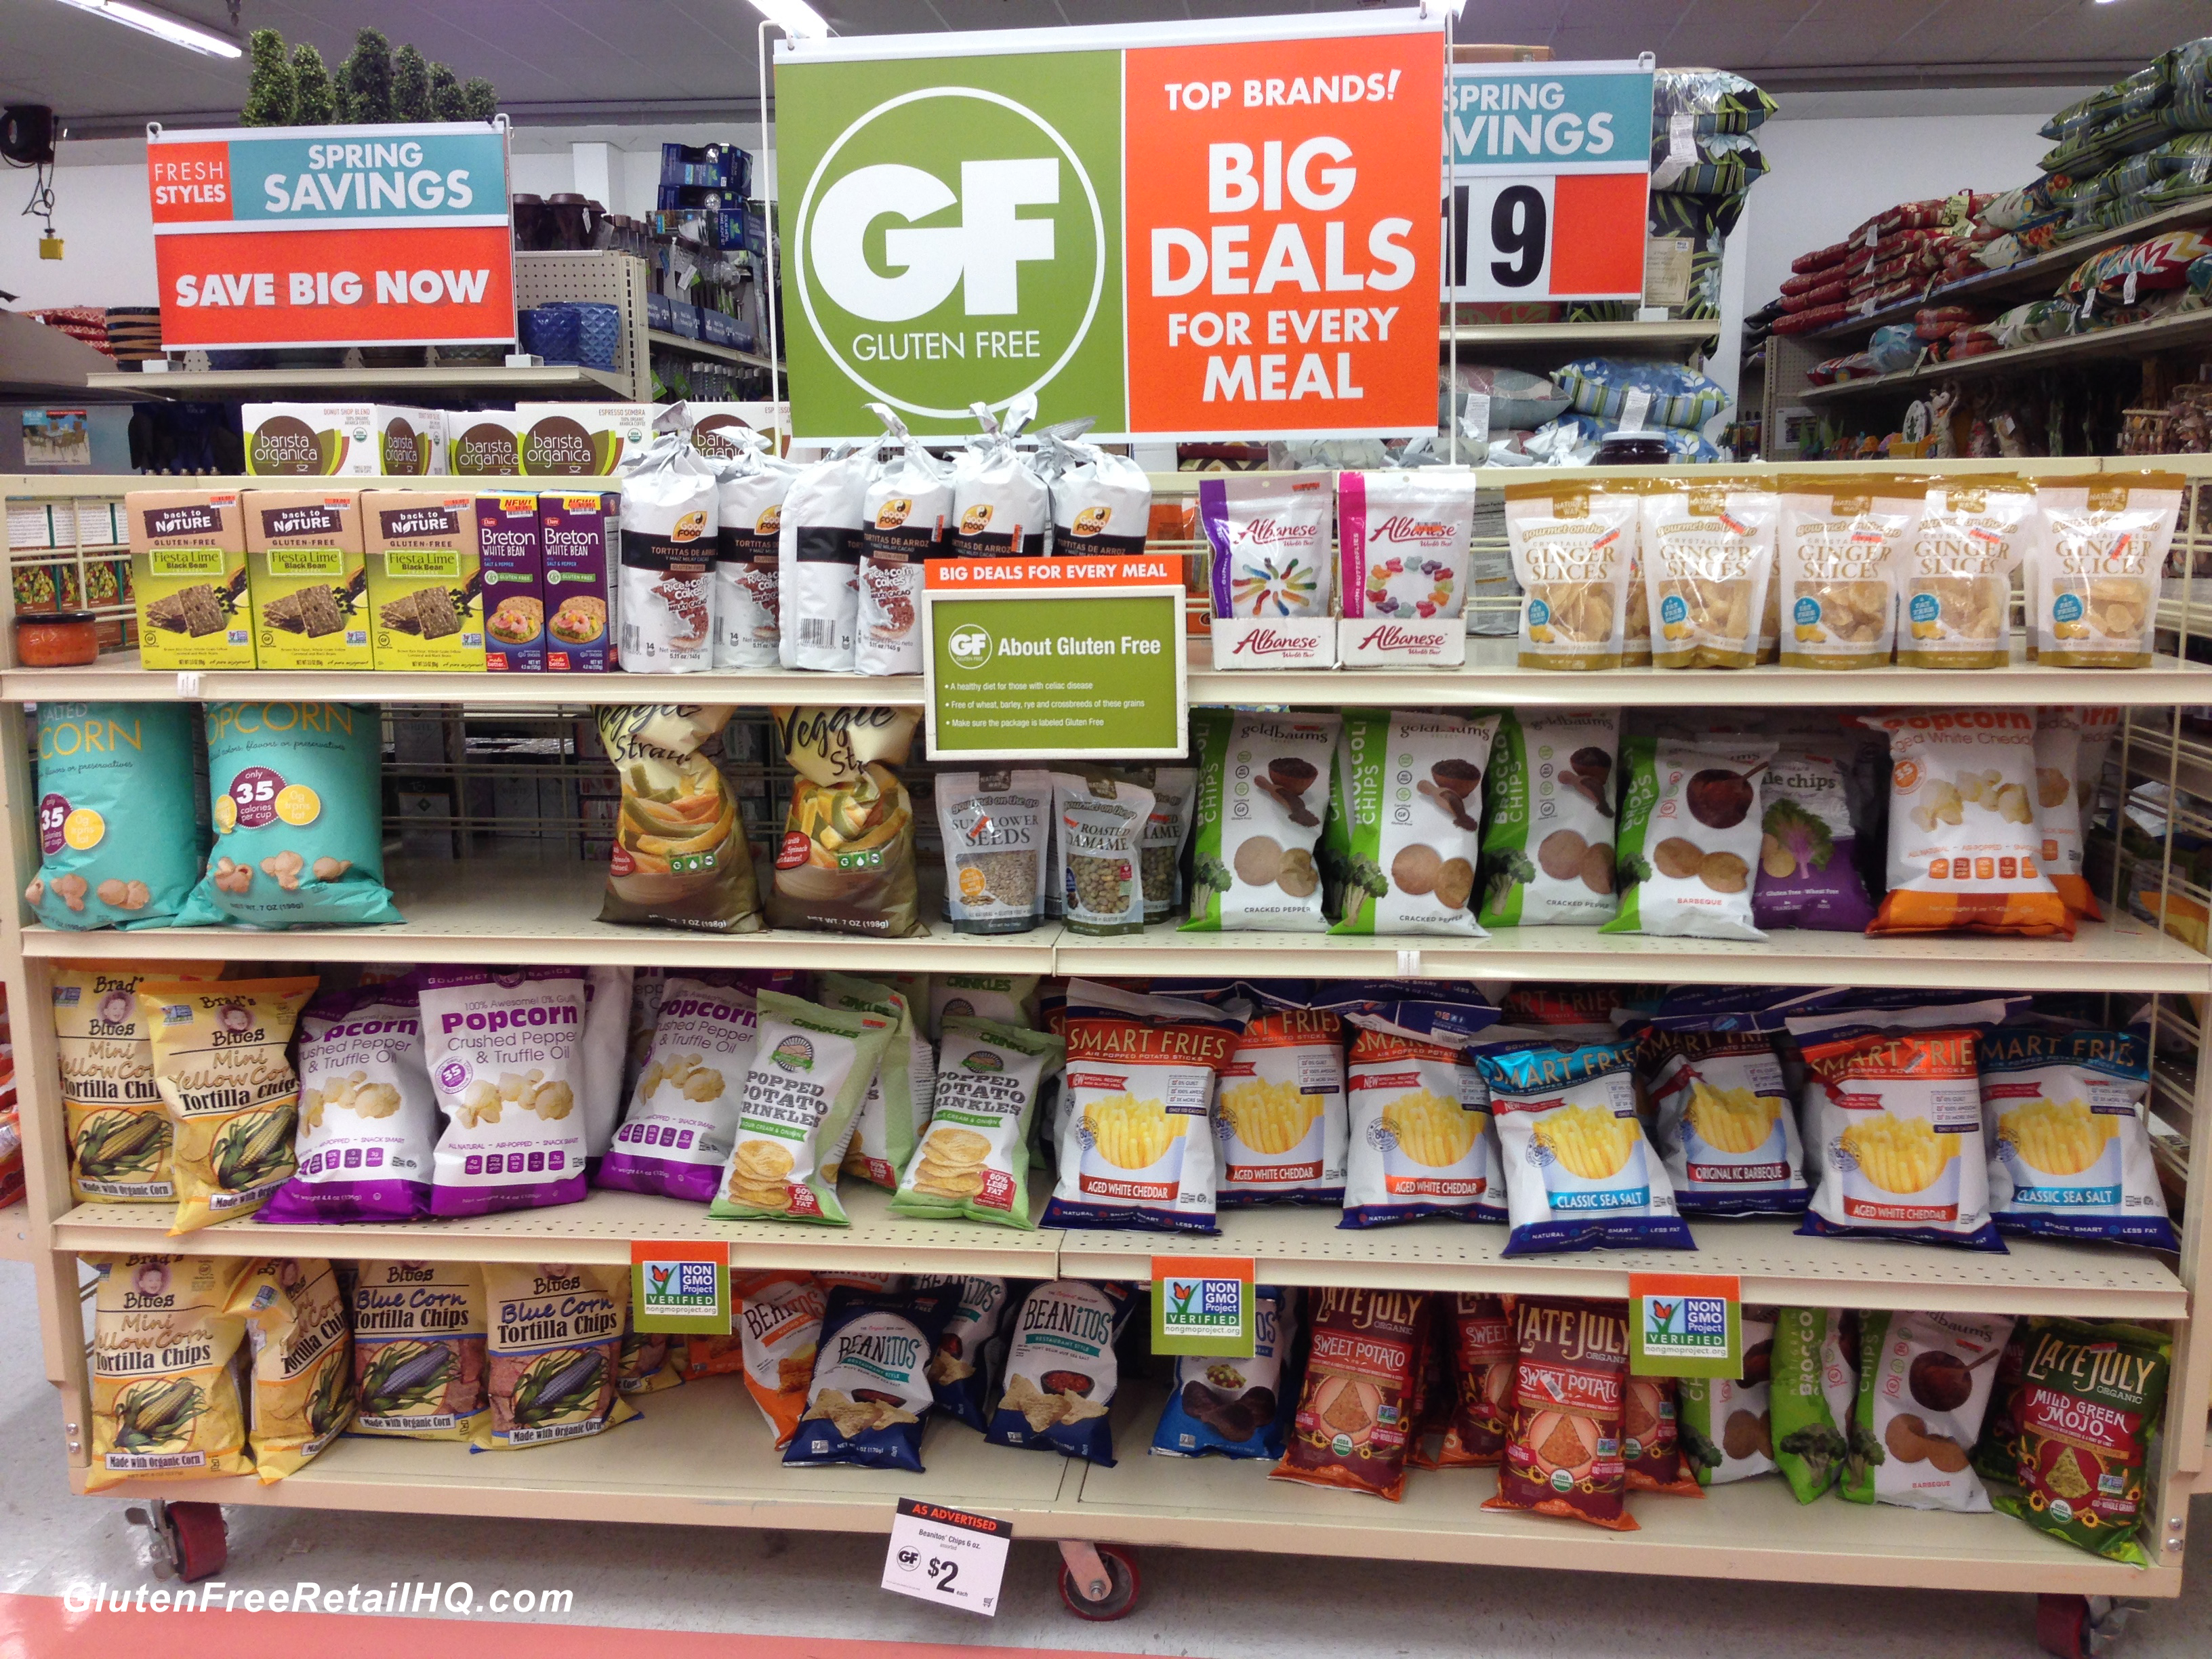 Find your nearest Big Lots store locations in United States. Home Offers Join Mailing List. Add FREE Listing Create Account Login. Big Lots Locations. Find your nearest Big Lots location with our store locator. Store Locator: POPULAR Are we missing your local Big Lots location? Add a store to let us know about it. Add a store Claim Listing.